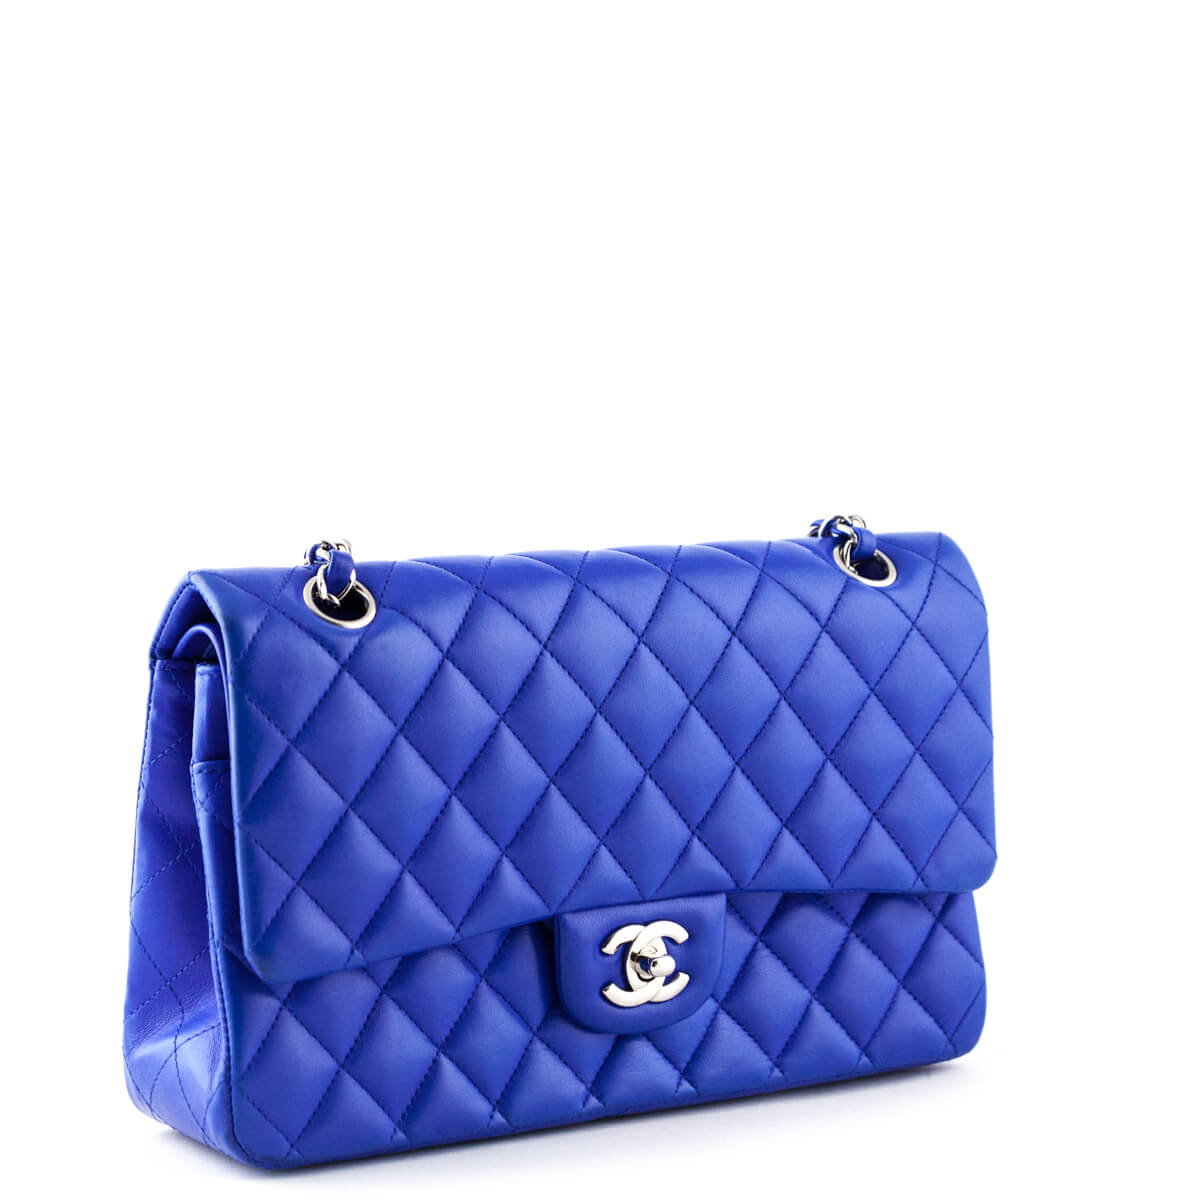 b6752cdd057f3a ... Chanel Royal Blue Lambskin Medium Classic Double Flap - LOVE that BAG -  Preowned Authentic Designer ...